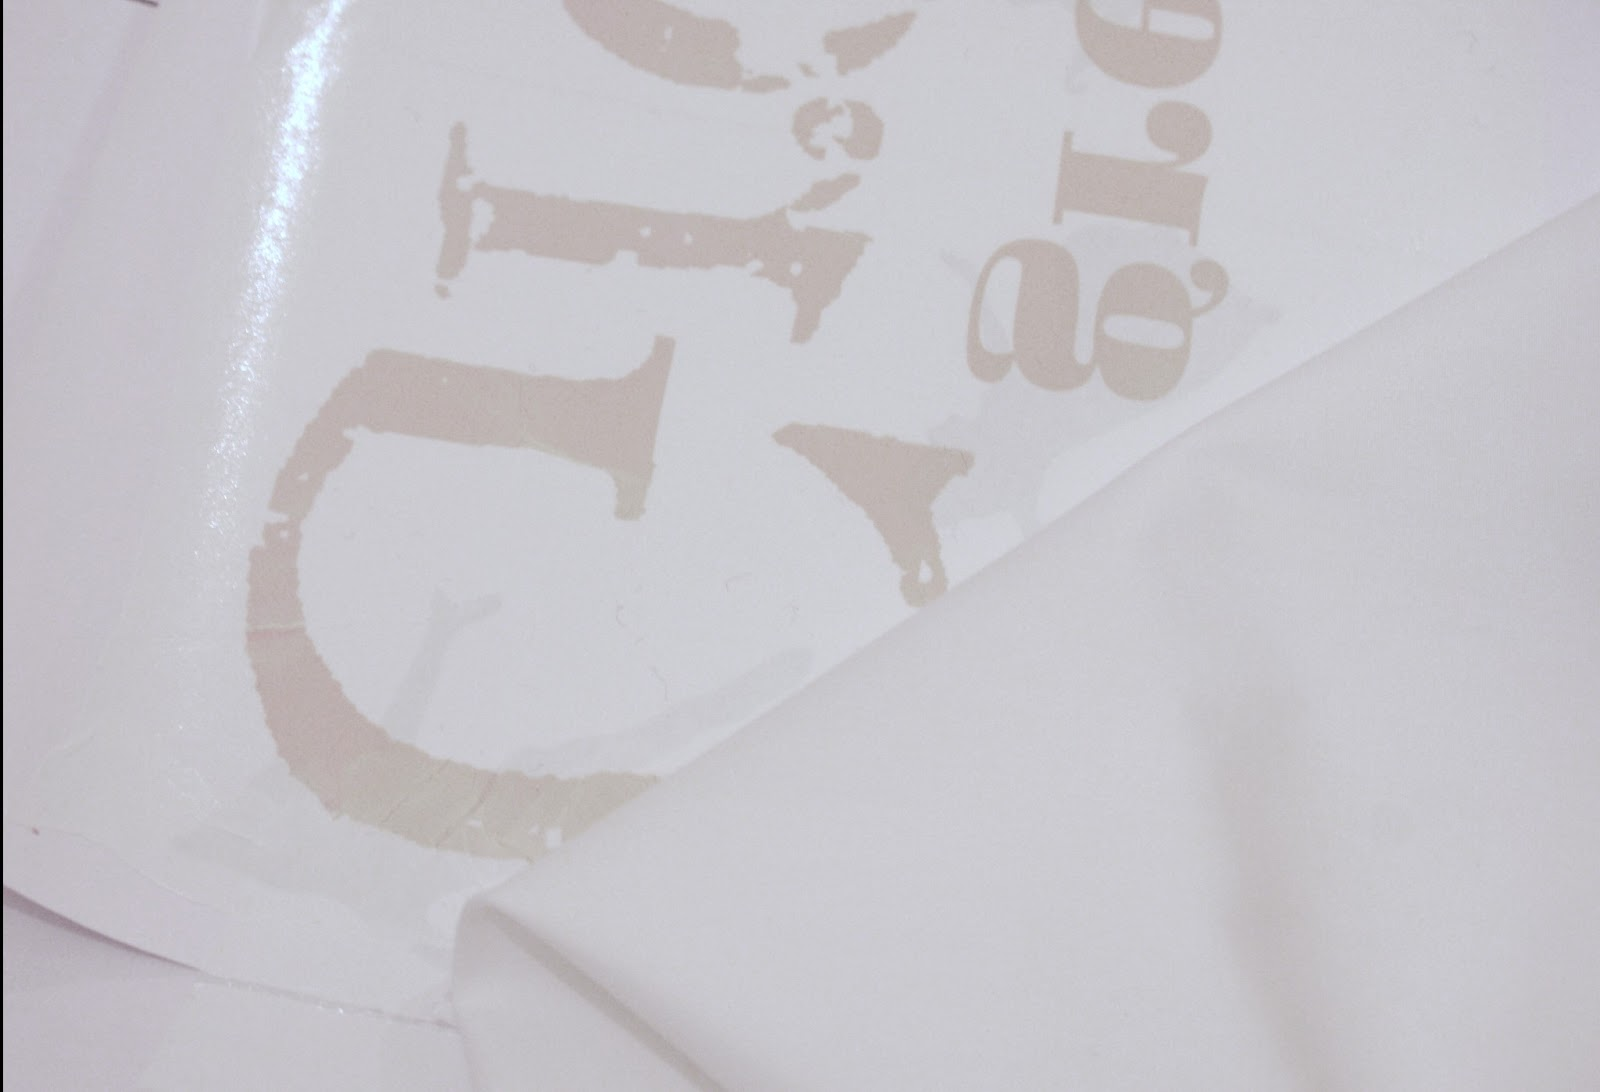 Transfer Image To Shirt With Freezer Paper | Azərbaycan